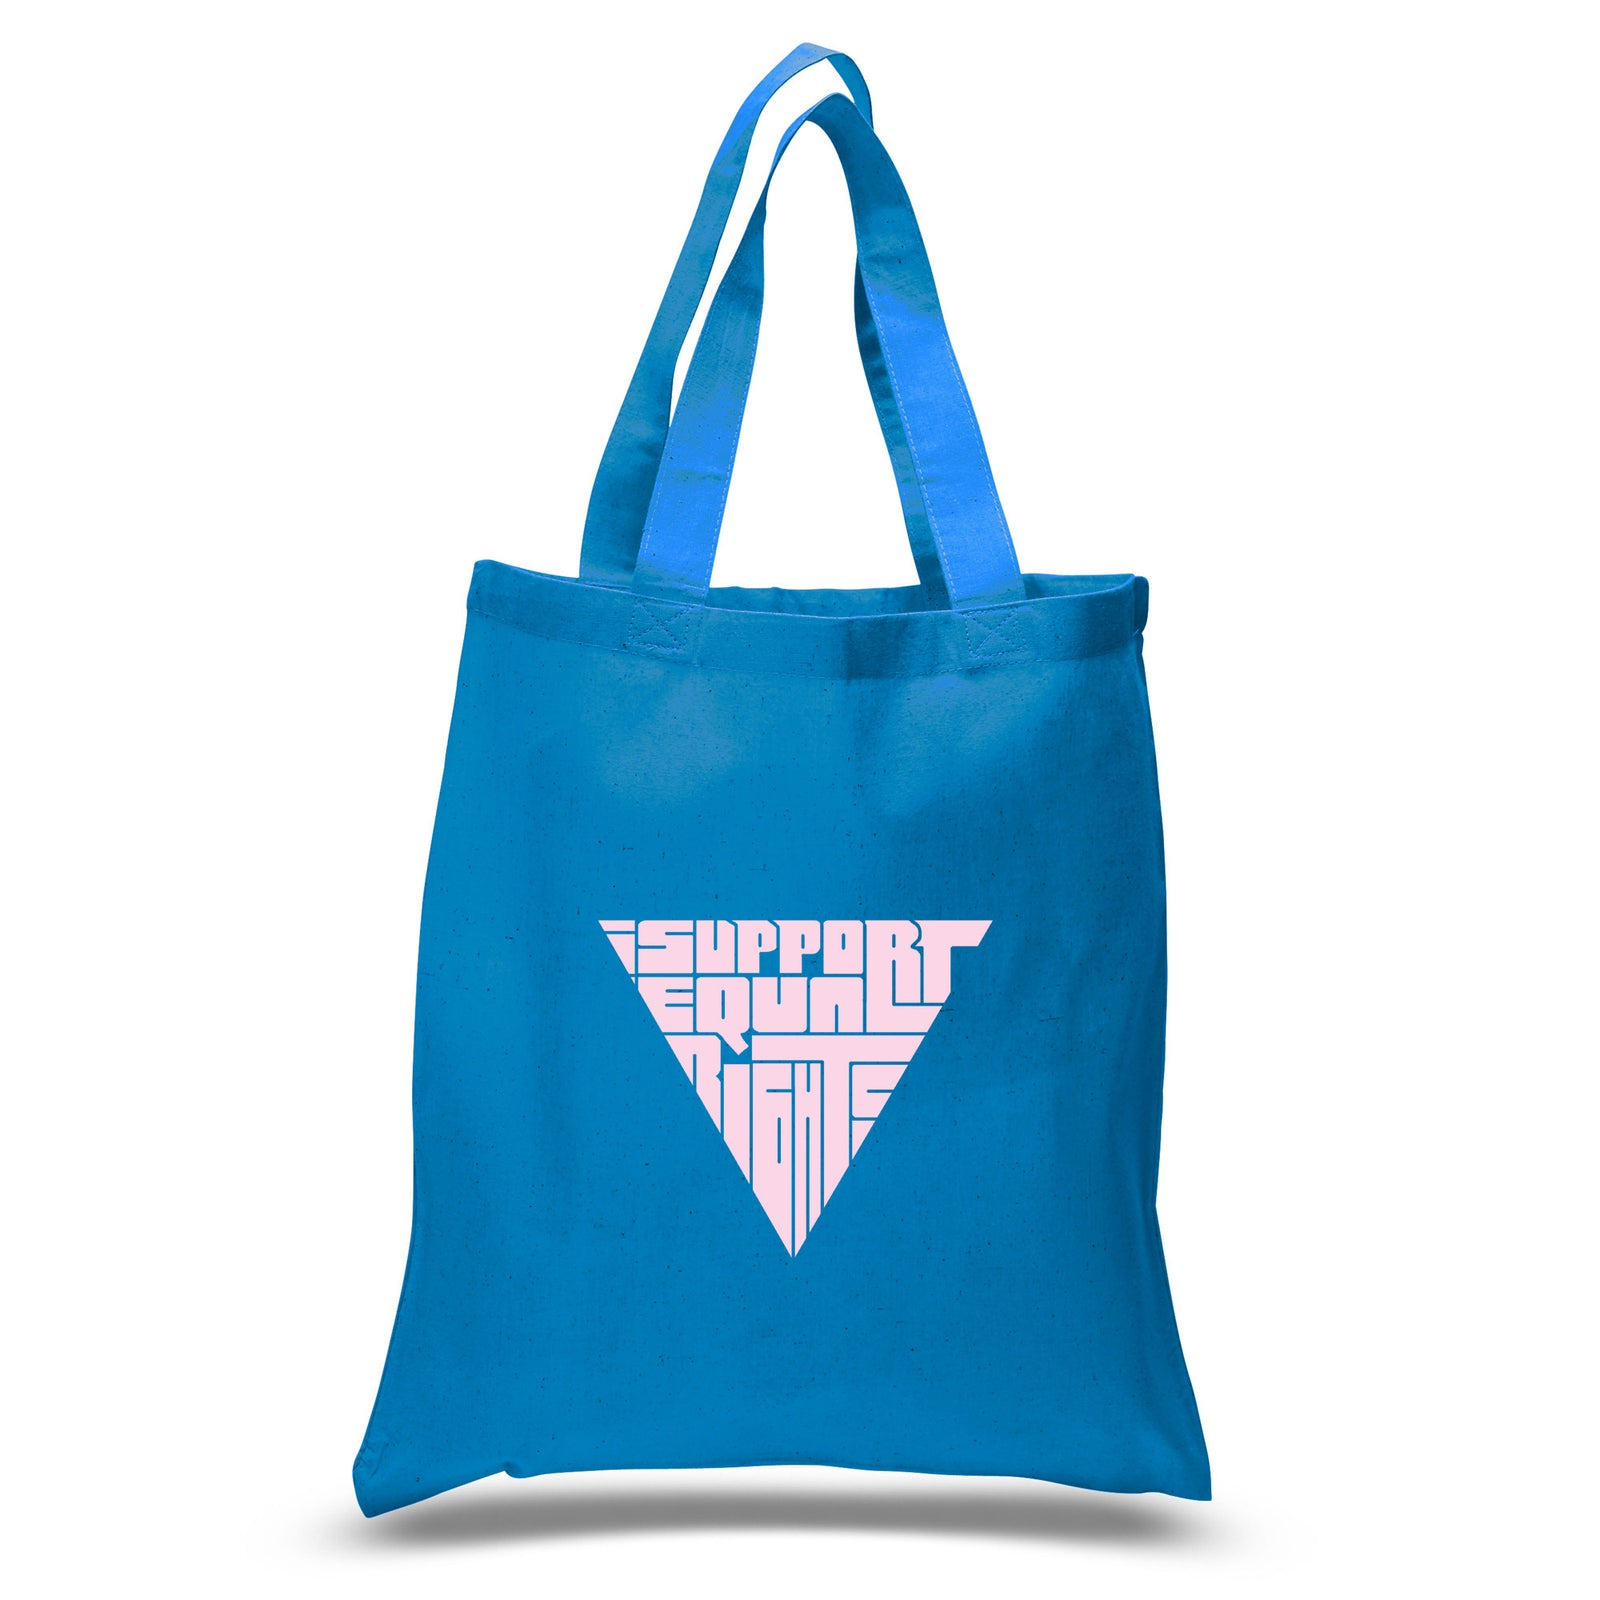 Small Tote Bag - I SUPPORT EQUAL RIGHTS